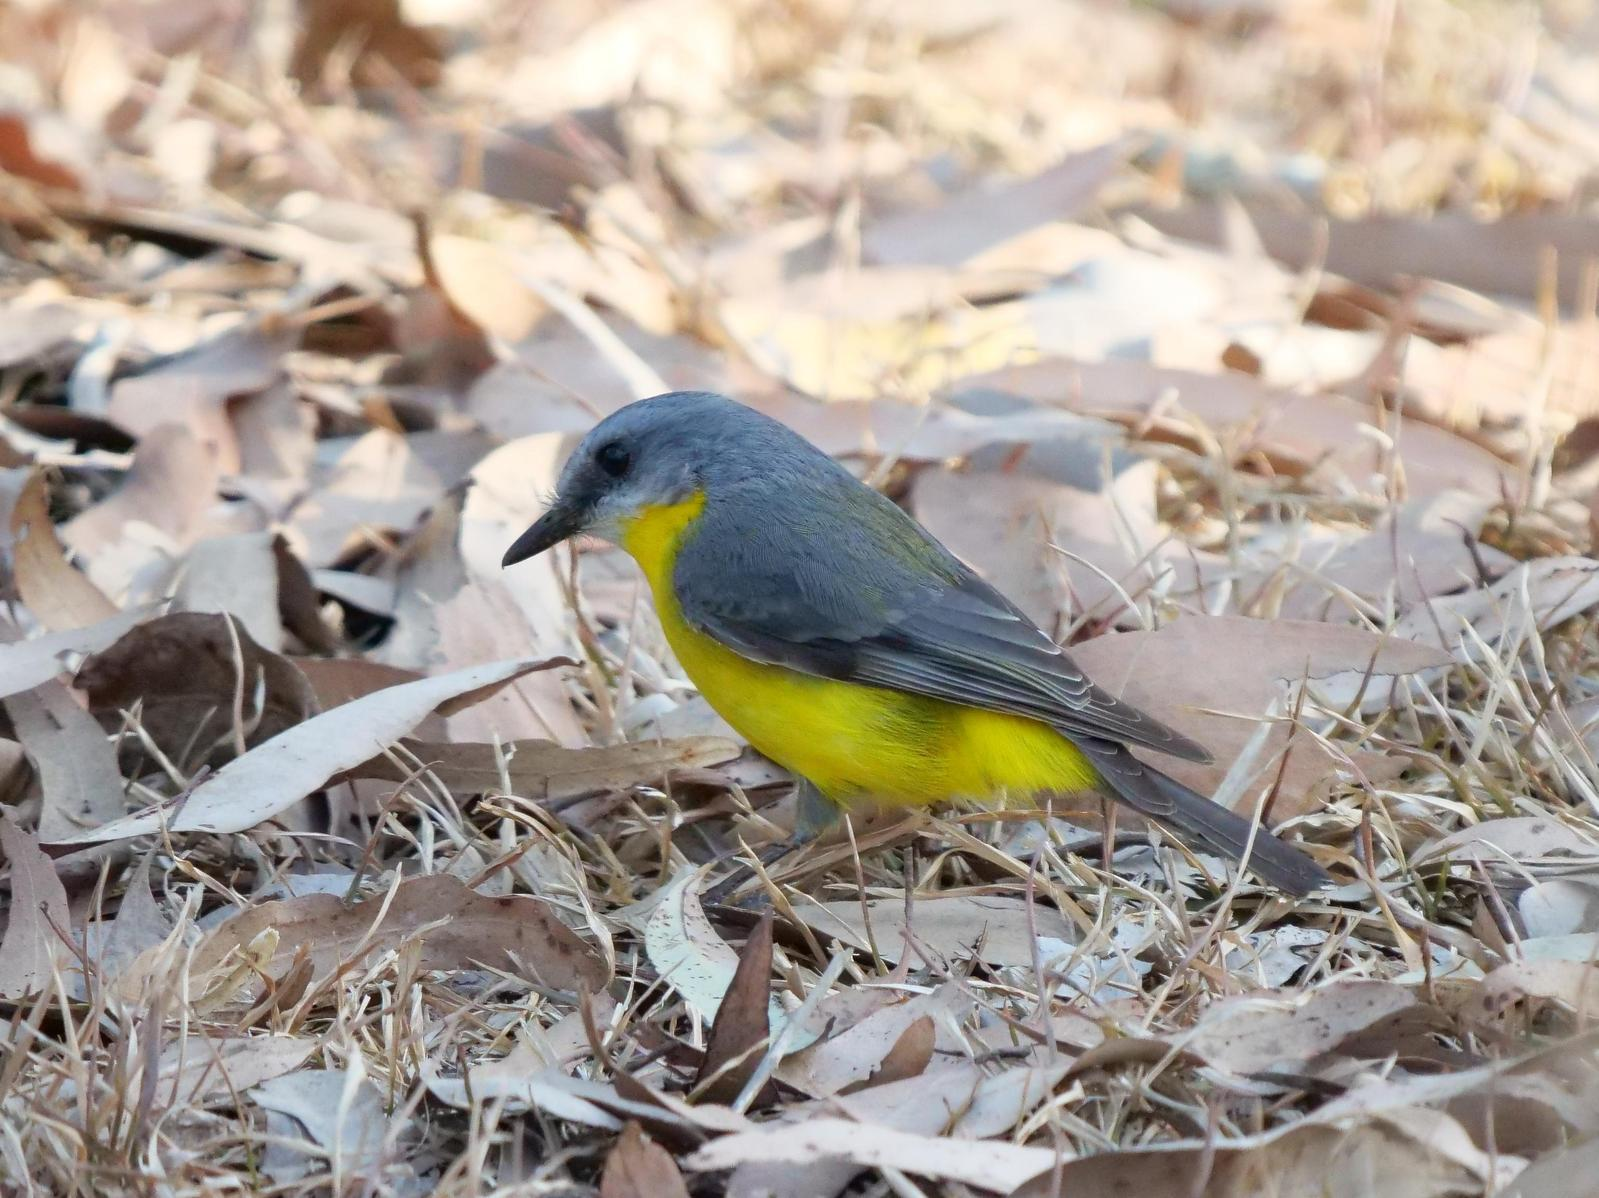 Eastern Yellow Robin Photo by Peter Lowe